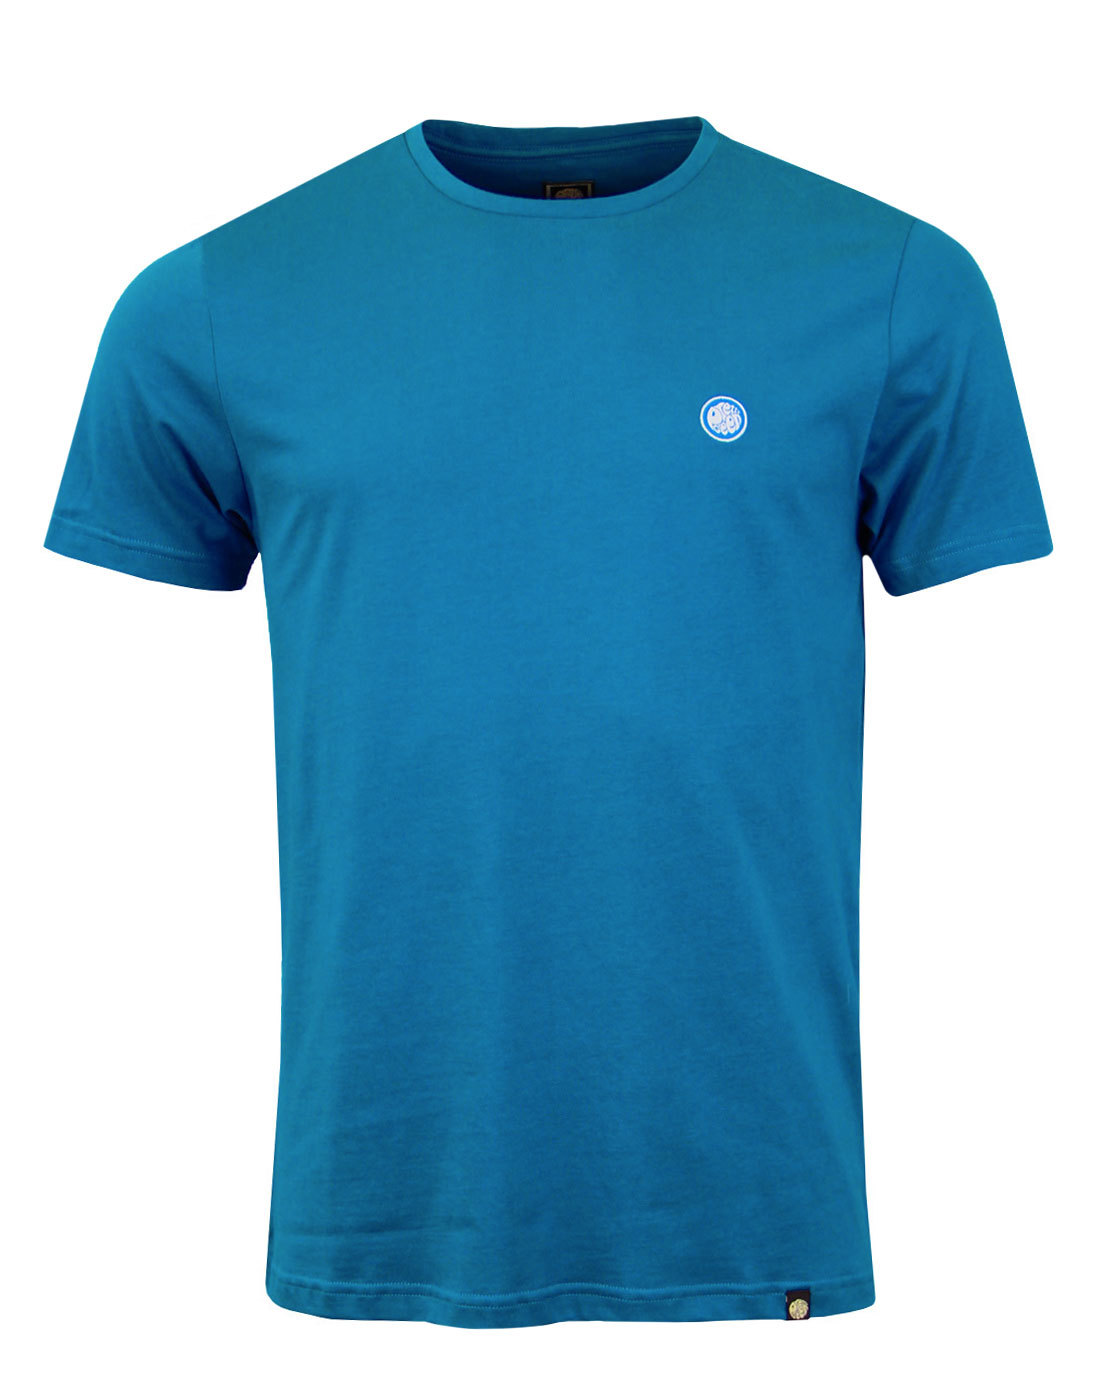 PRETTY GREEN Men's Retro Crew Neck Tee TURQUOISE